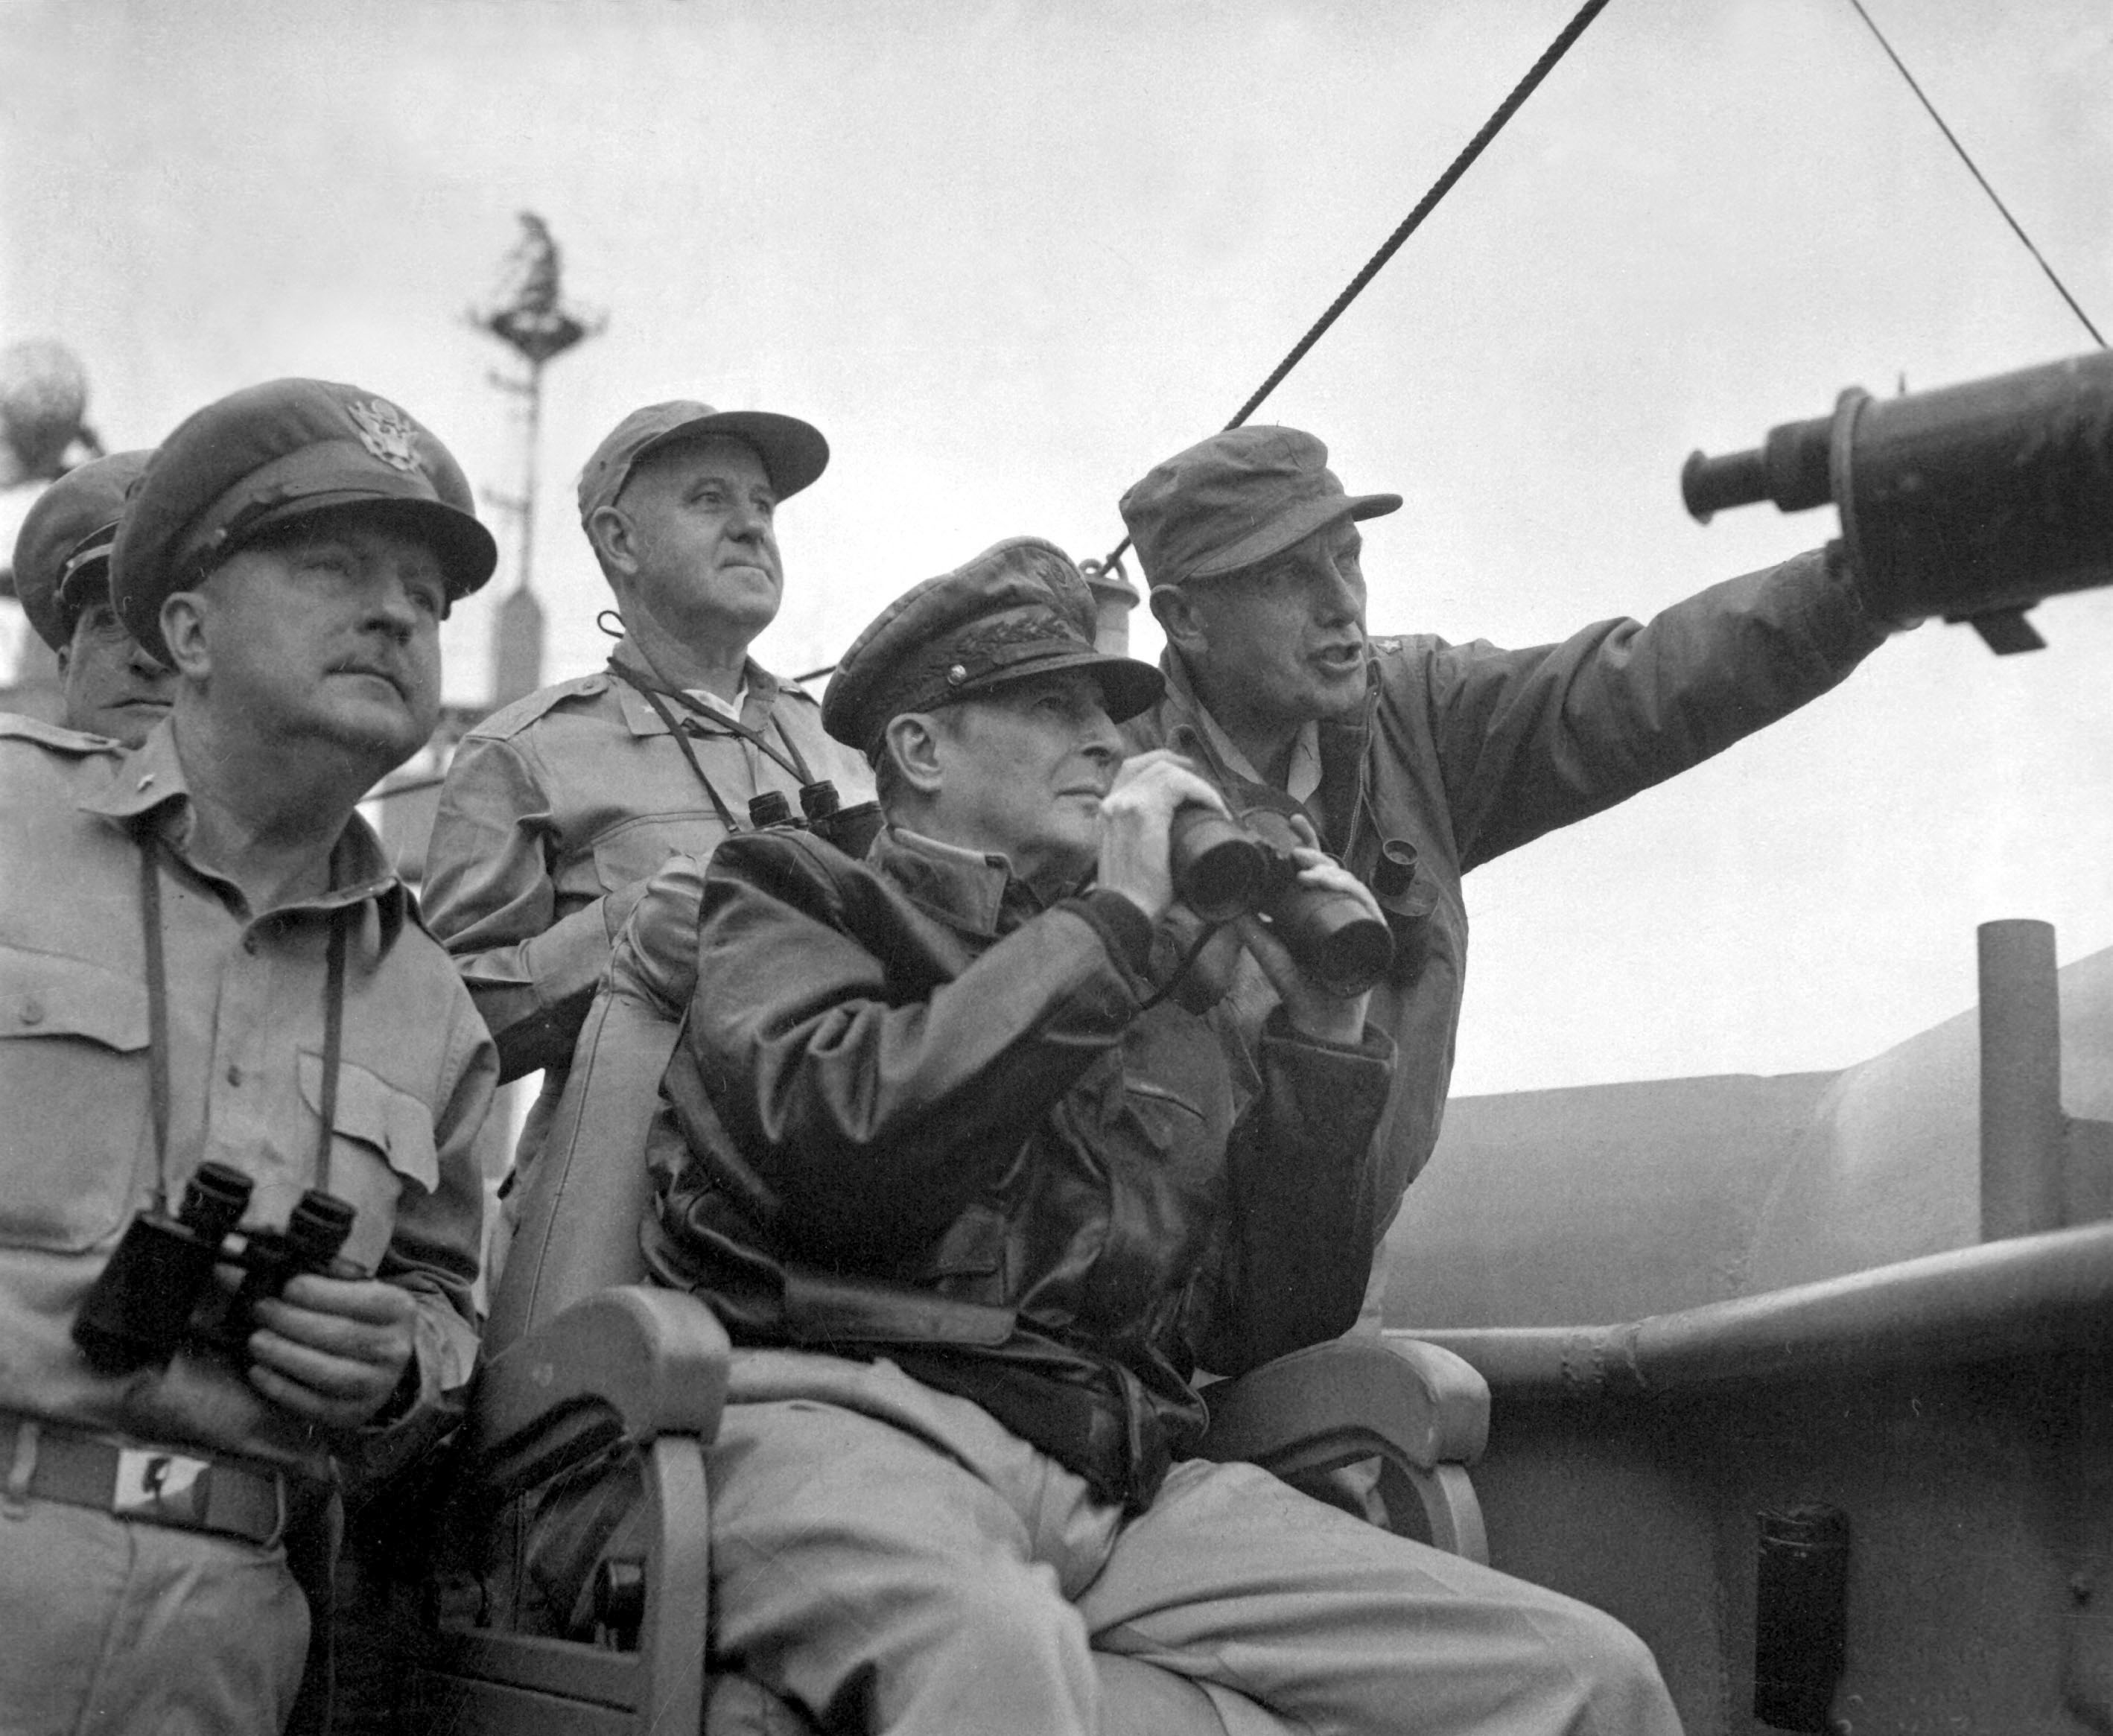 Brigadier General Courtney Whitney; General Douglas MacArthur, Commander in Chief of U.N. Forces; and Major General Edward M. Almond observe the shelling of Inchon from the USS. Mt. McKinley, September 15, 1950. Nutter (Army).NARA FILE #: 111-